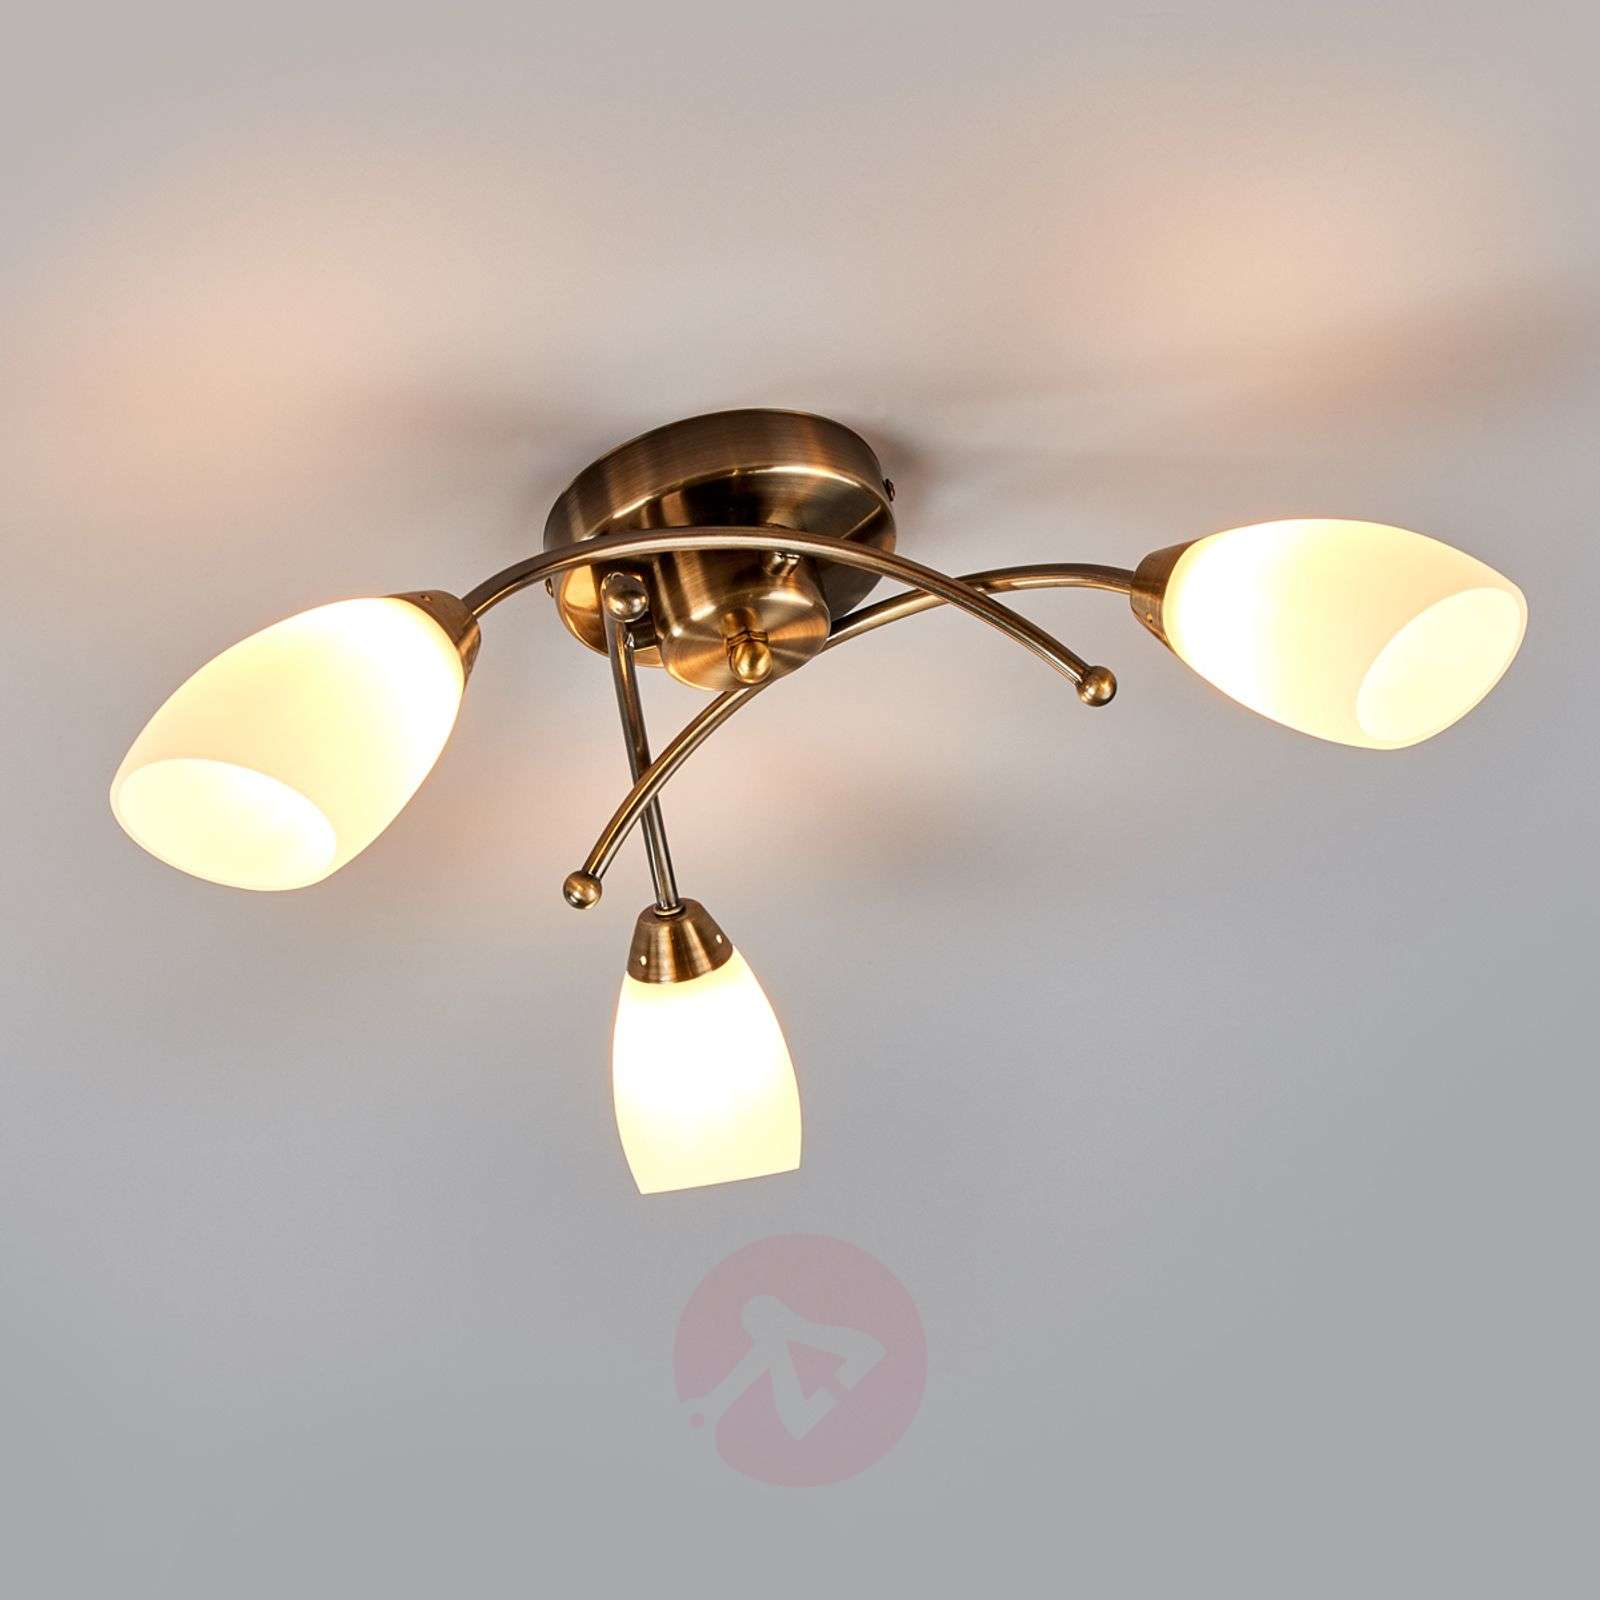 3 Bulb Ceiling Light: Opera 3-bulb Ceiling Light, Antique Brass